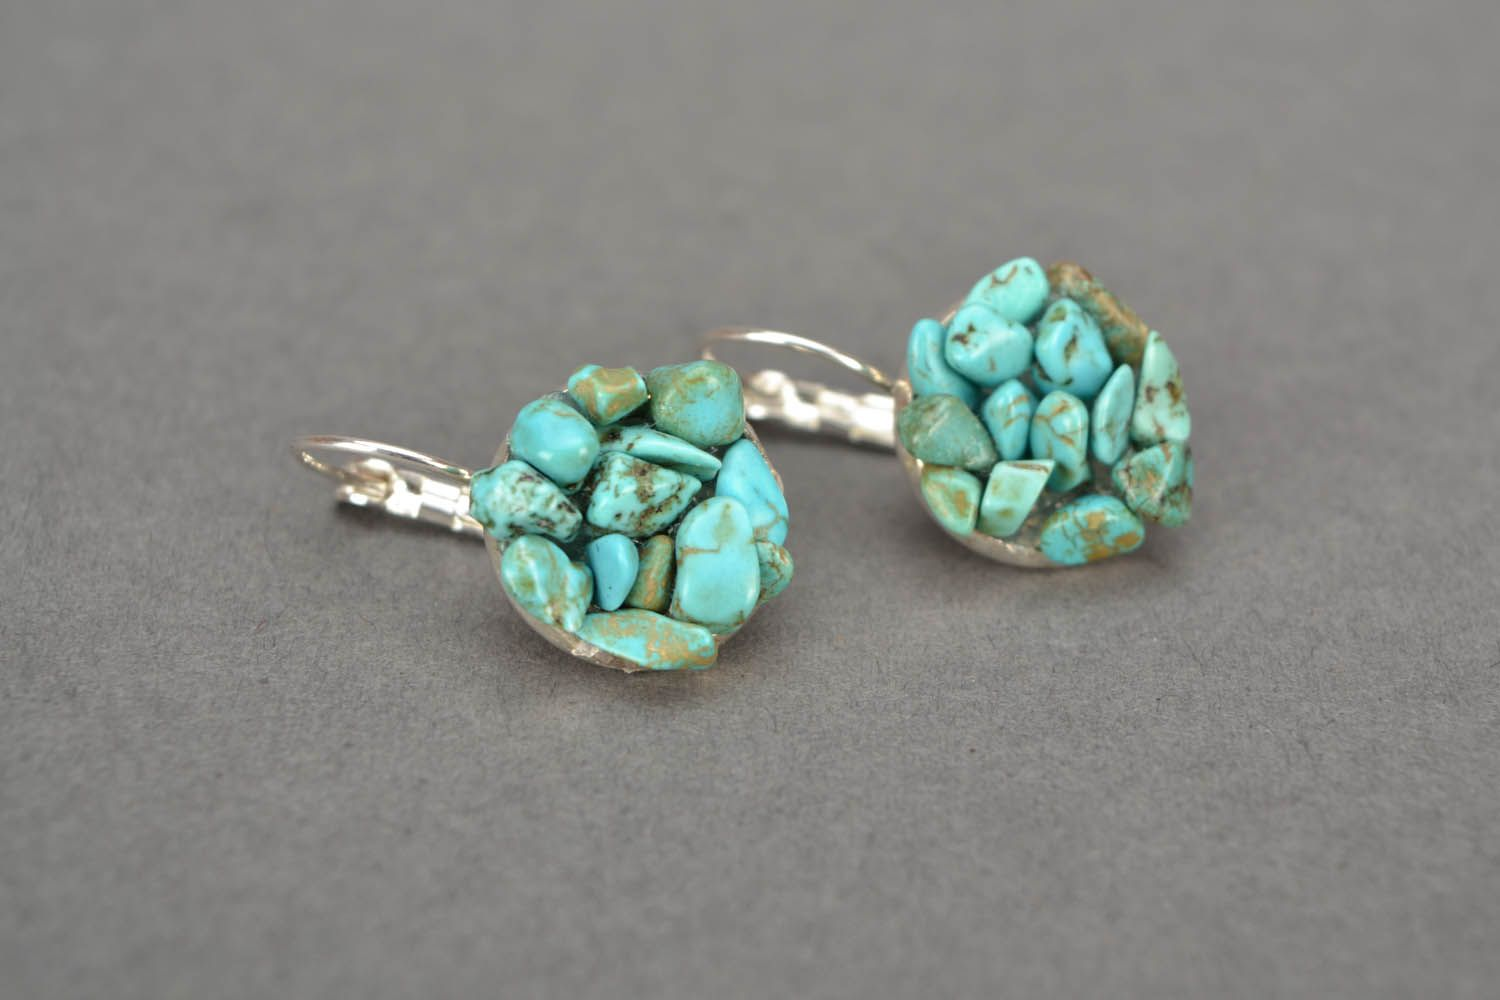 Handmade turquoise earrings photo 3